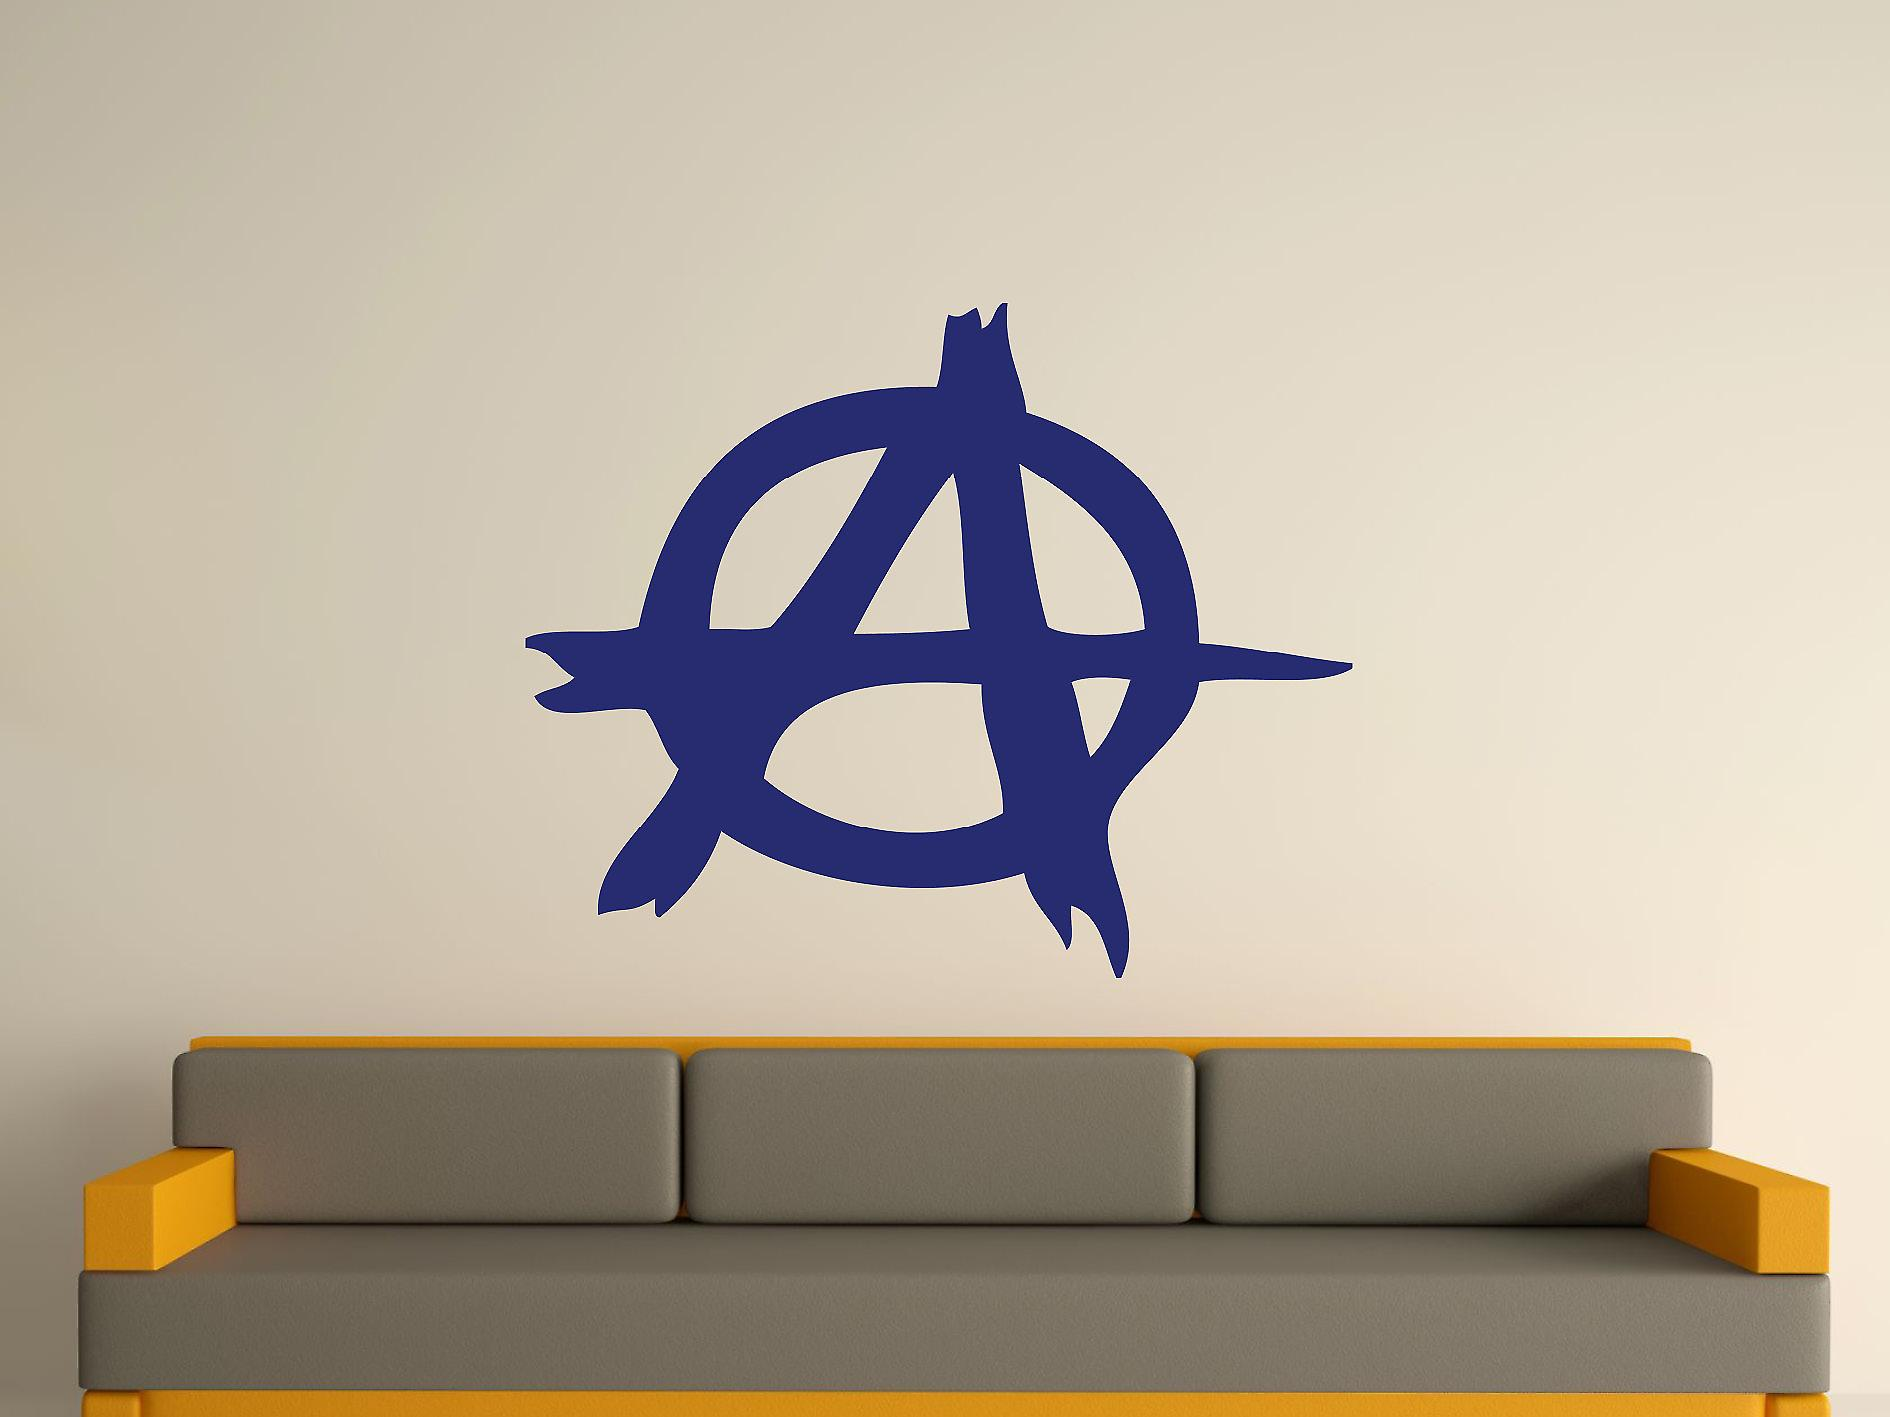 Anarchy Symbol Wall Art Sticker - Ultra Blue